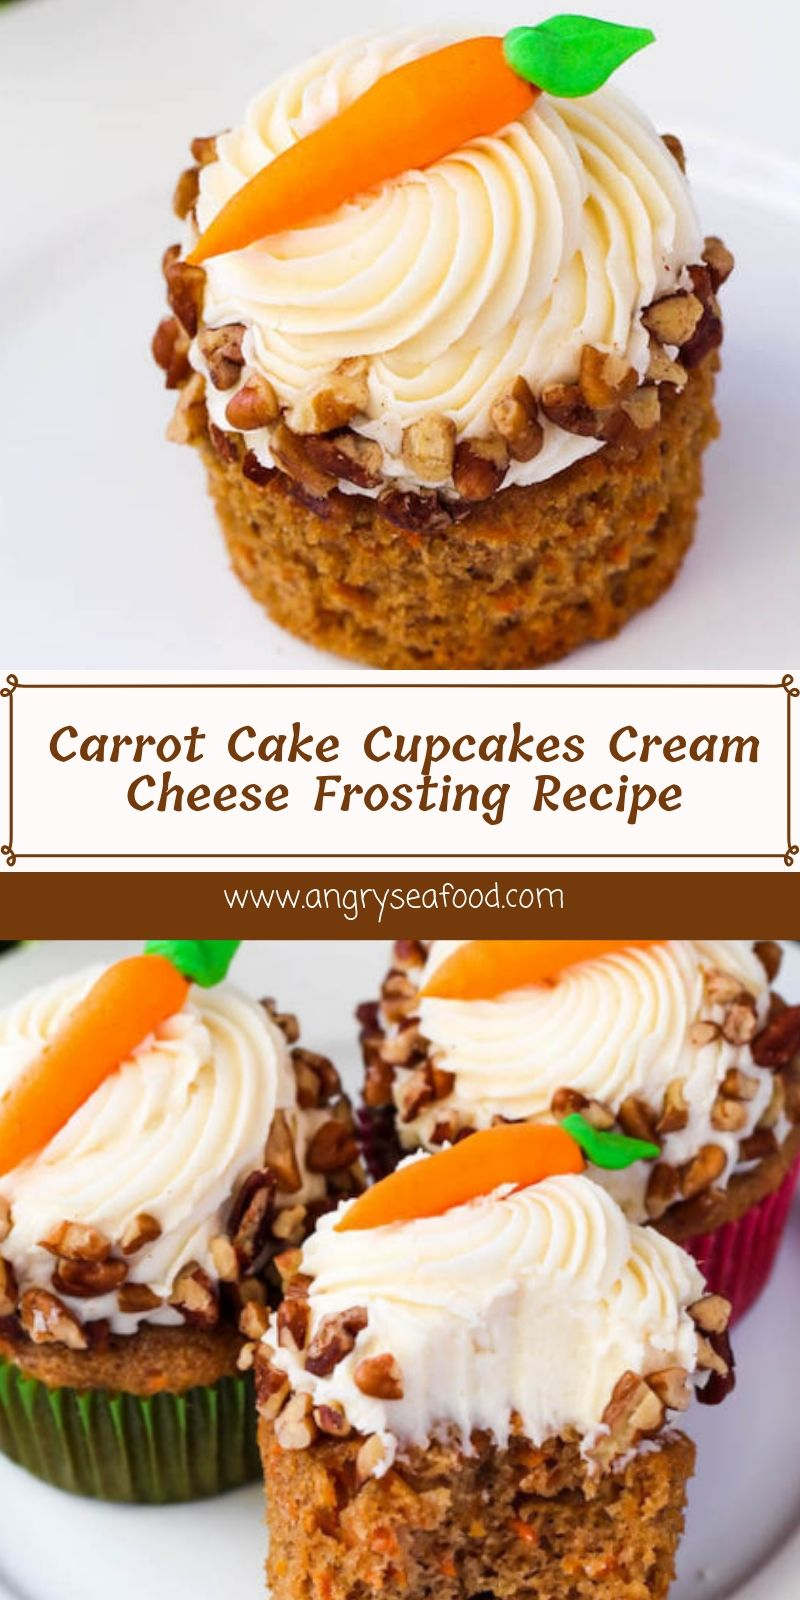 Carrot Cake Cupcakes Cream Cheese Frosting Recipe